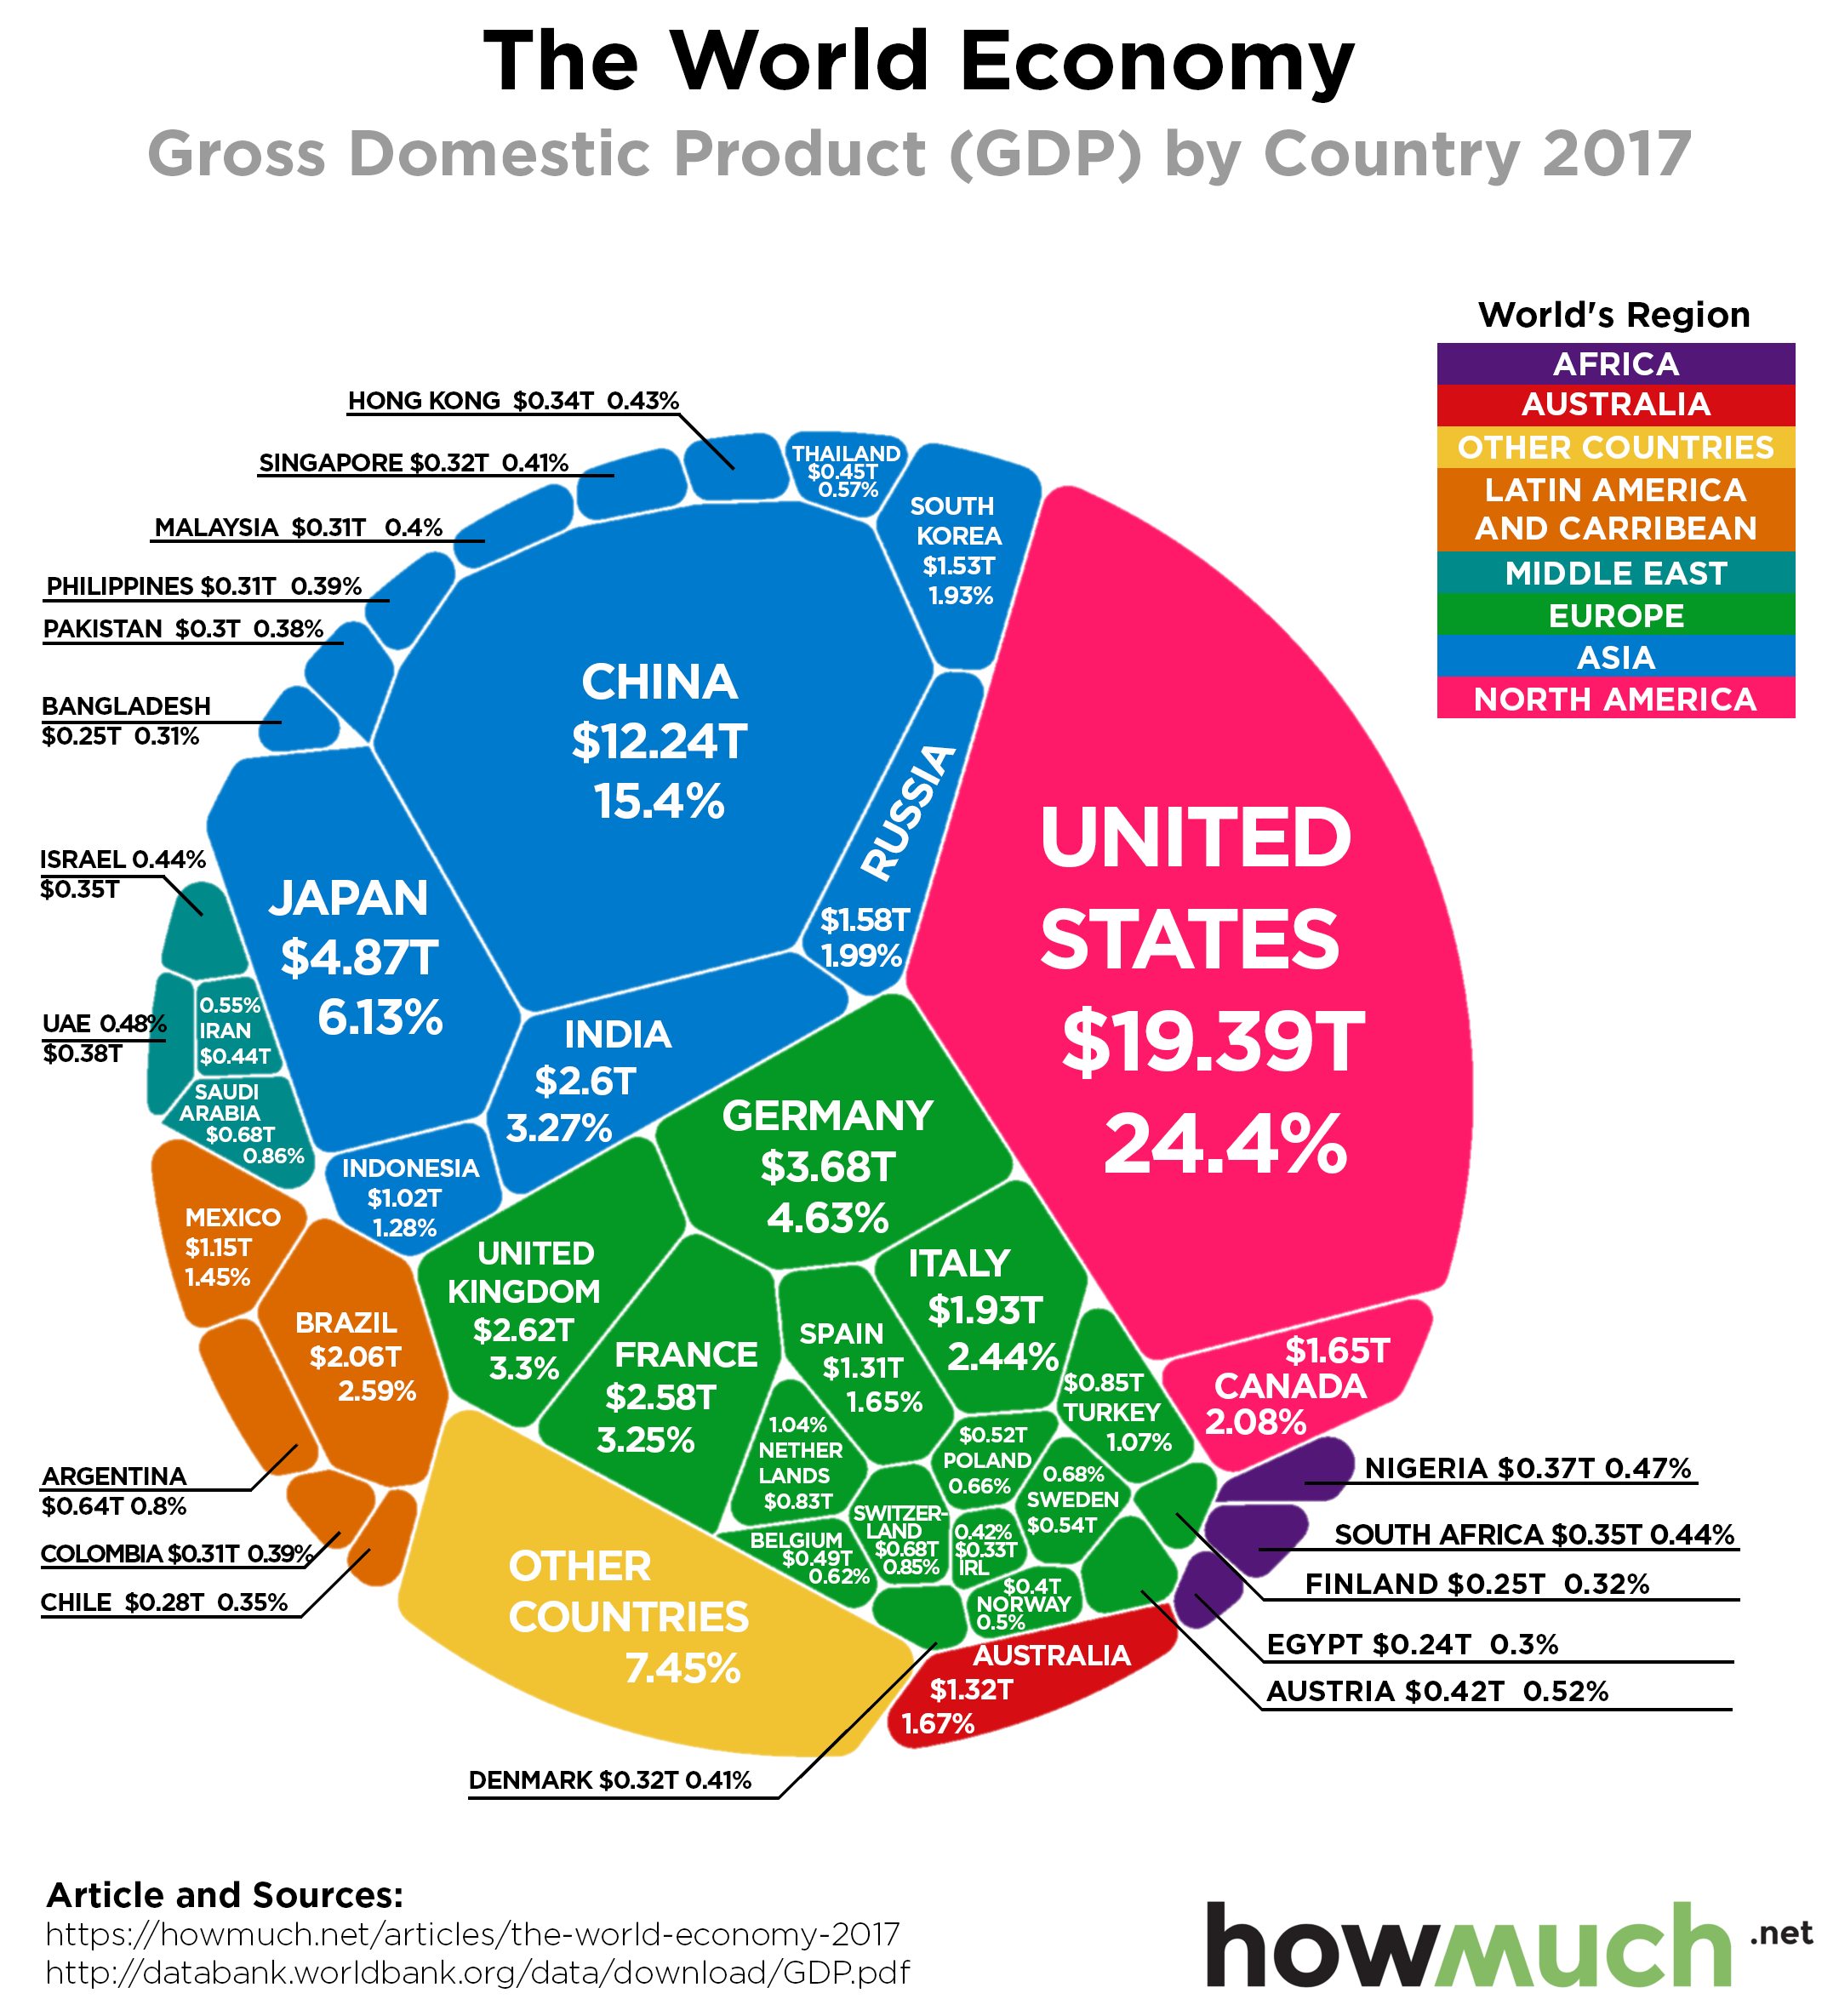 https://cdn.howmuch.net/articles/world-economy-by-gdp-2017-7c32.png